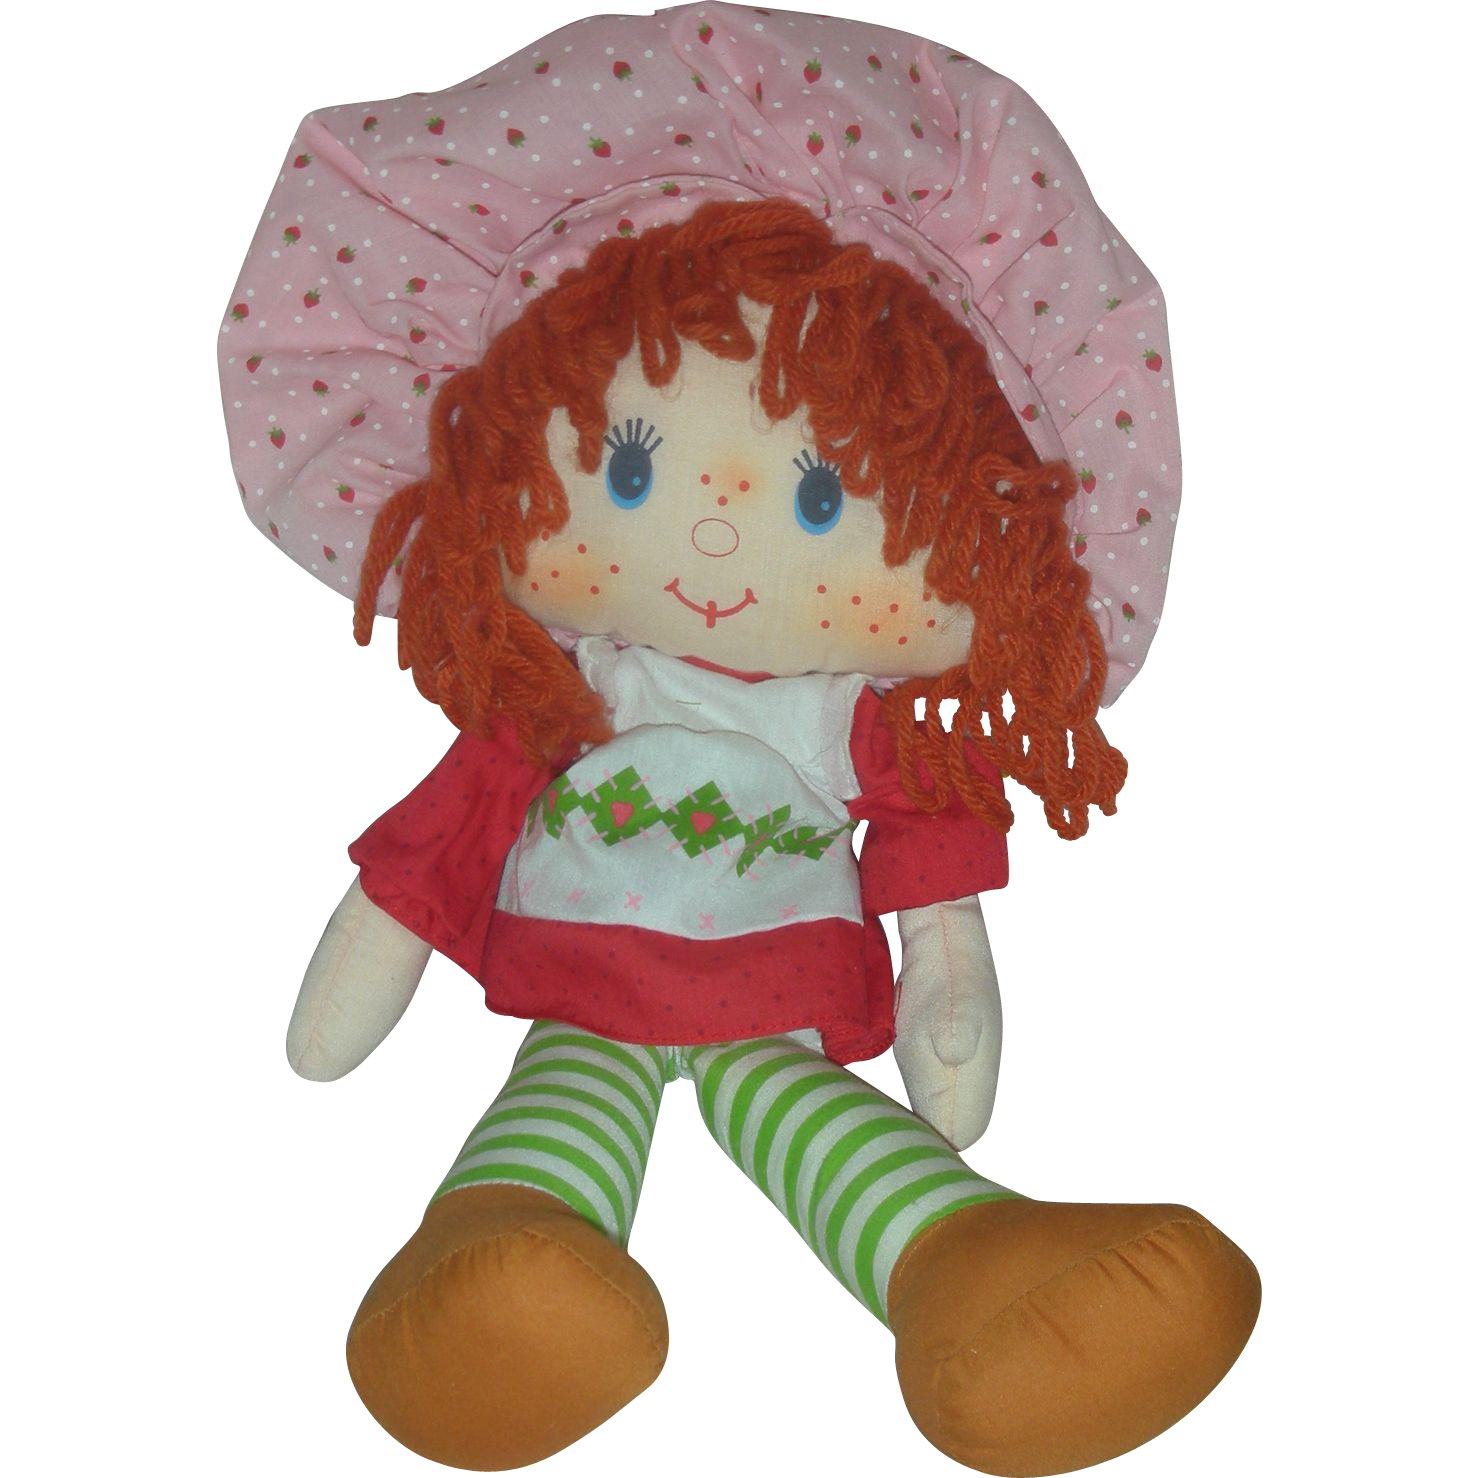 Vintage Kenner Strawberry Shortcake Rag Doll 1980s